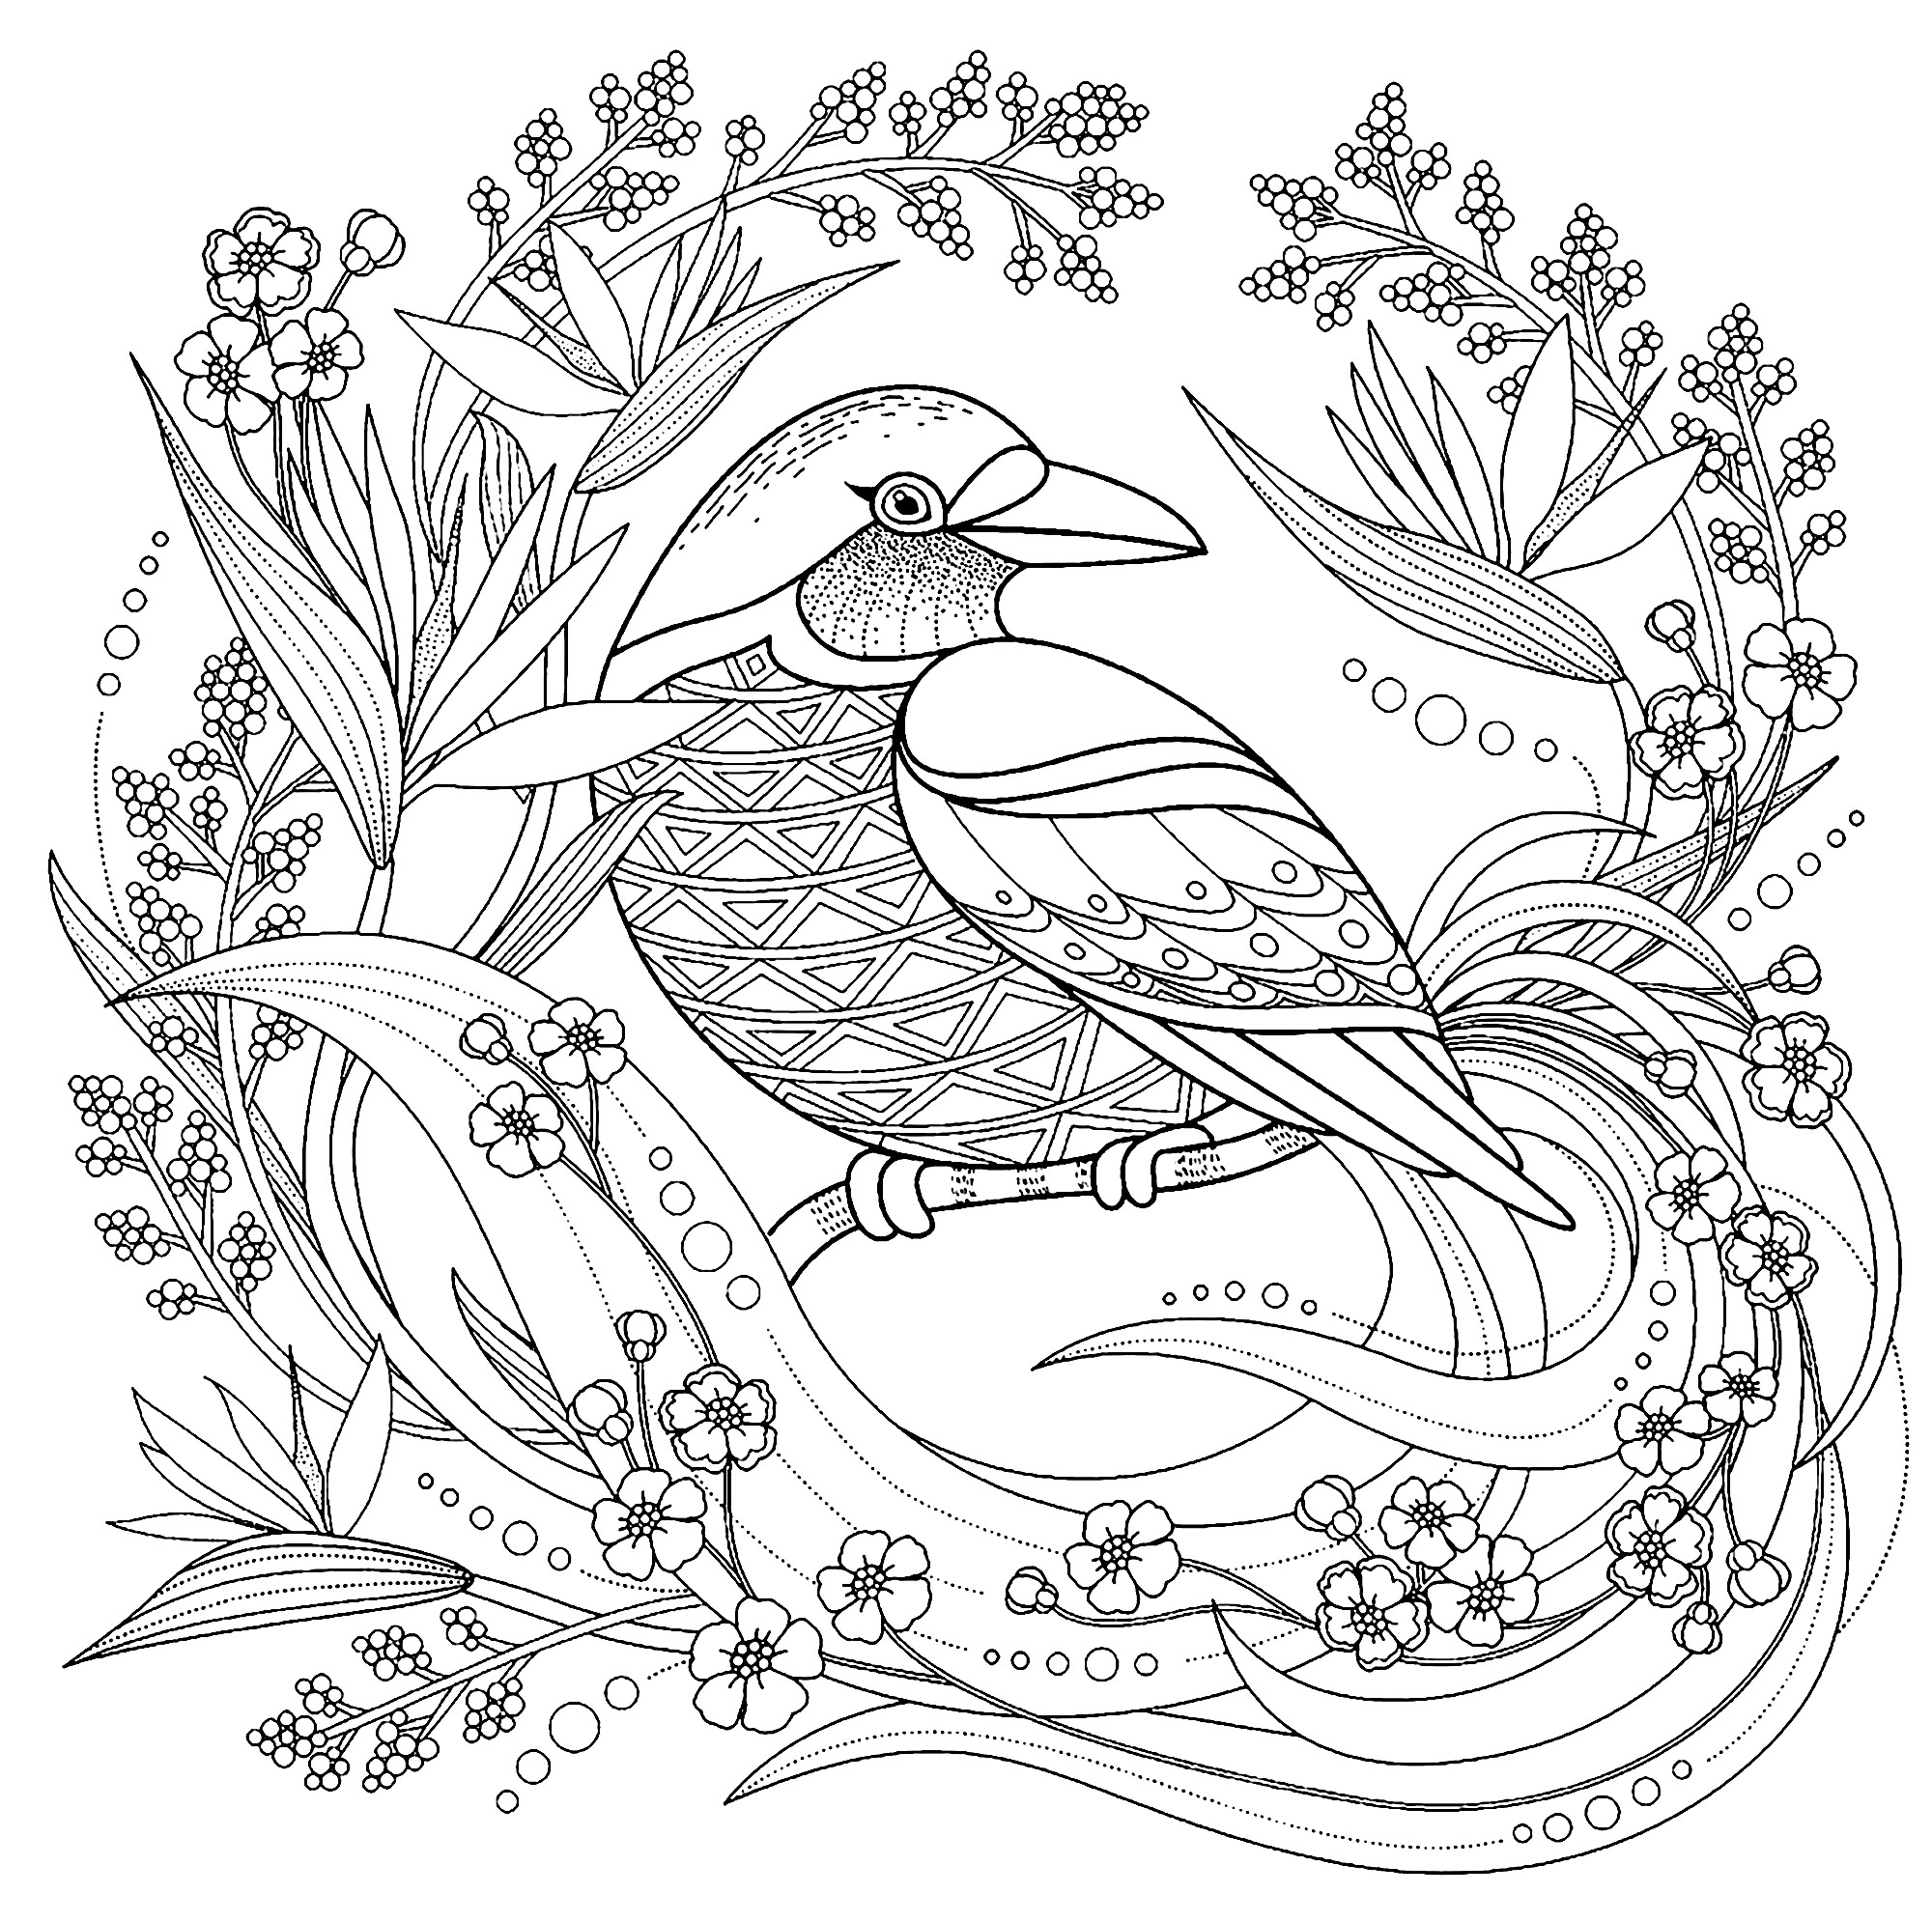 bird color pages birds for kids birds kids coloring pages bird pages color